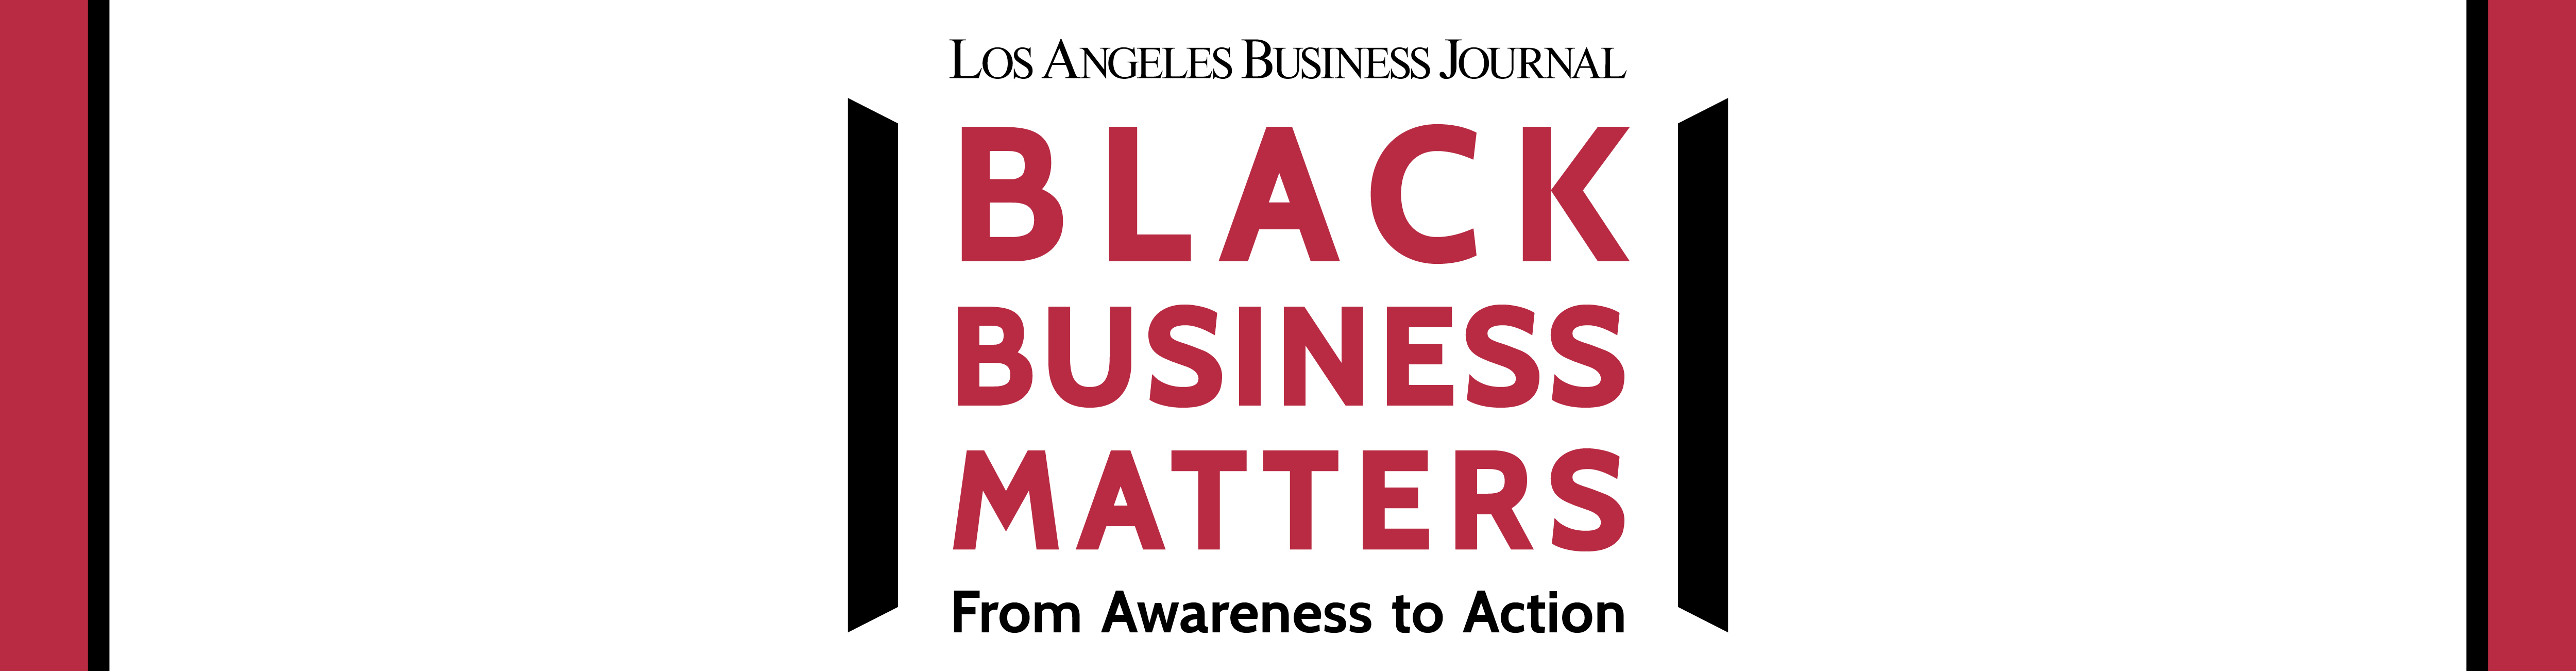 Los Angeles Business Journal Black Business Matters